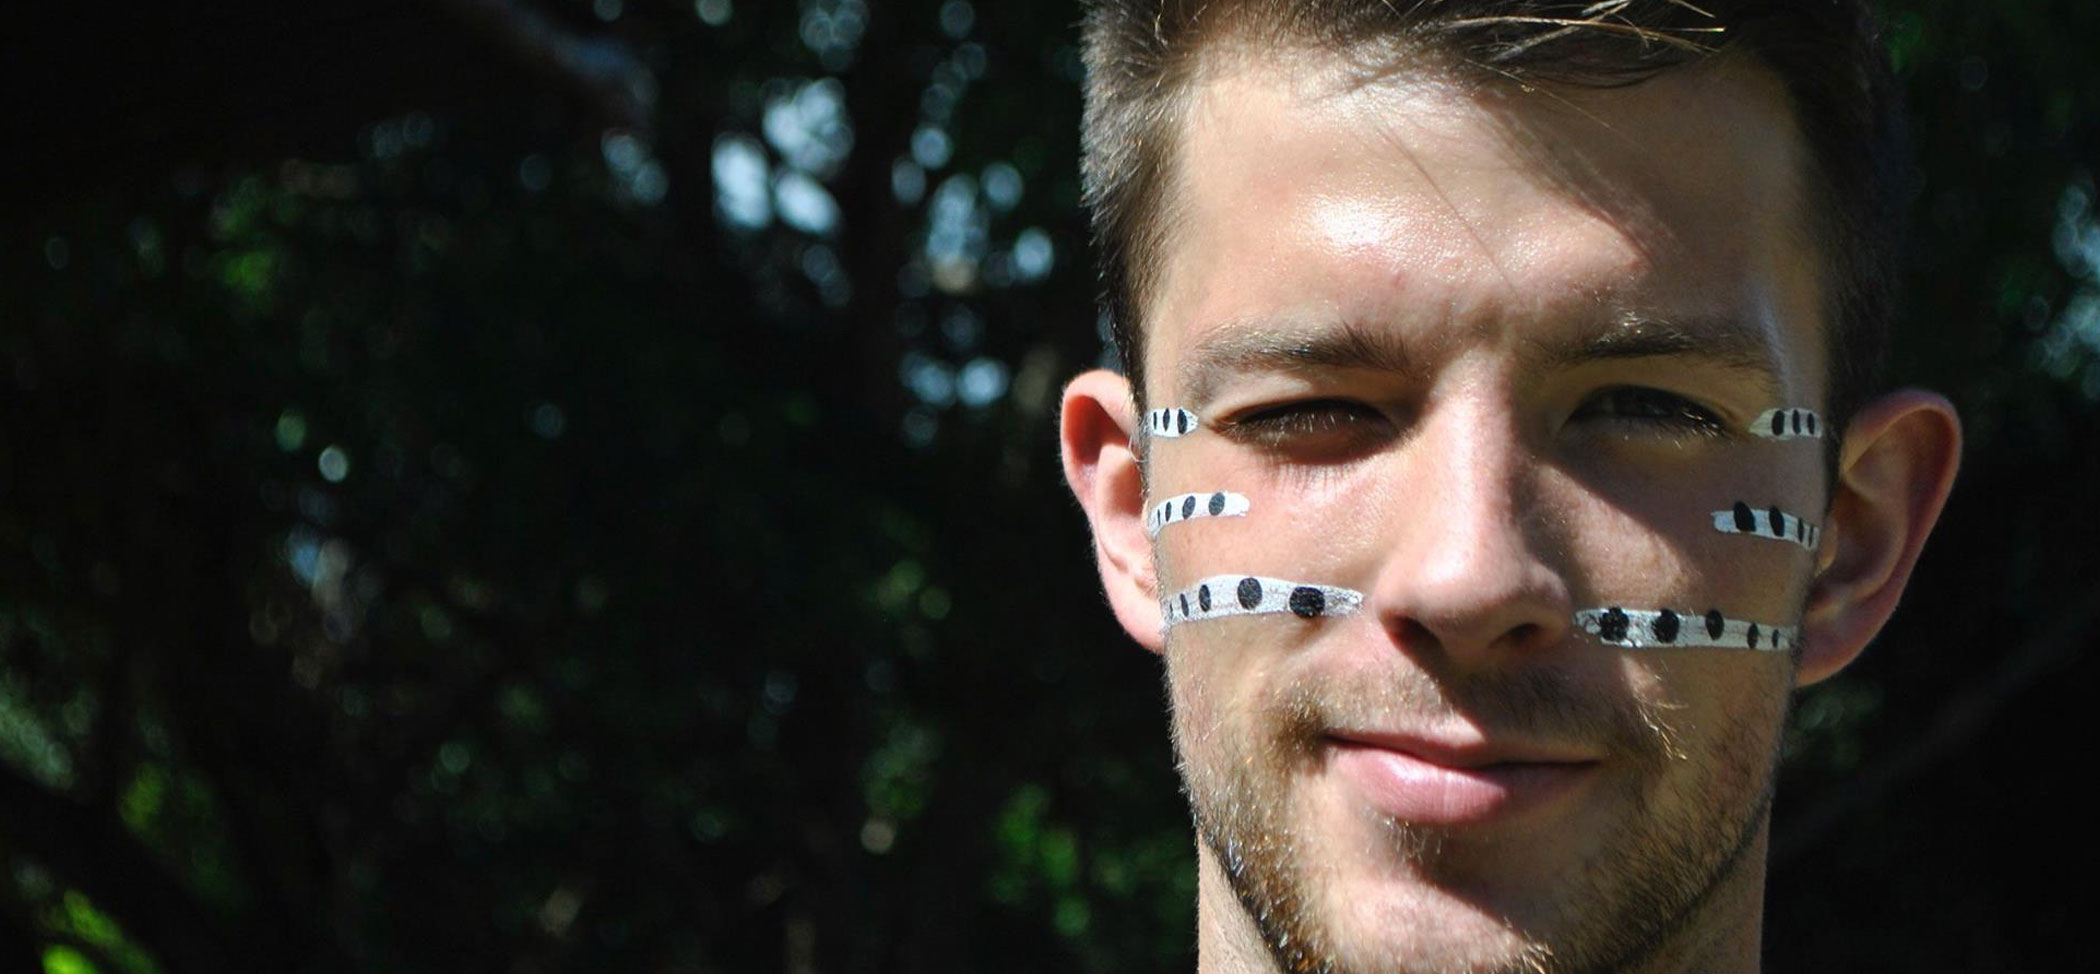 A male student wears traditional face paint during a travel course to Australia